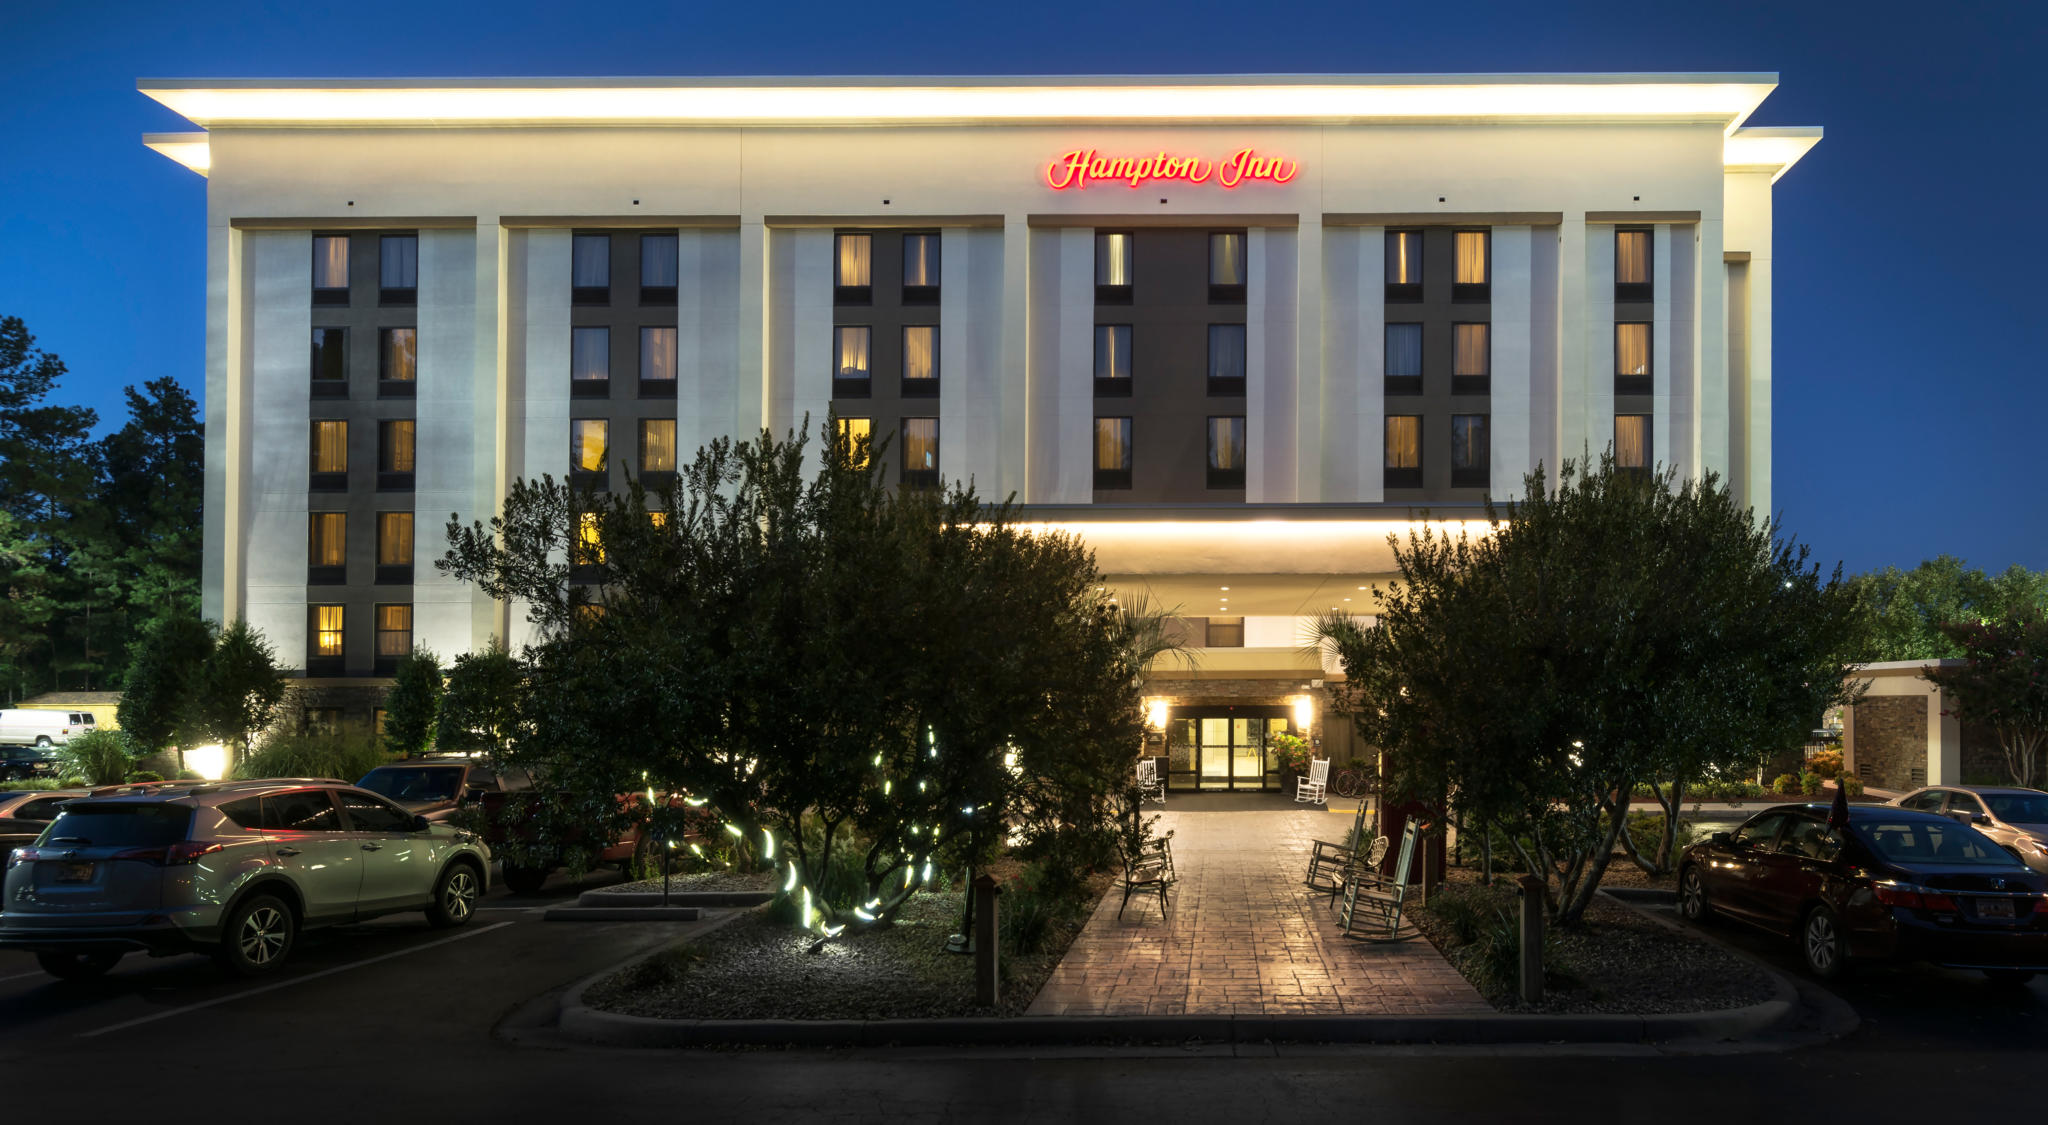 Hampton Inn Columbia SC